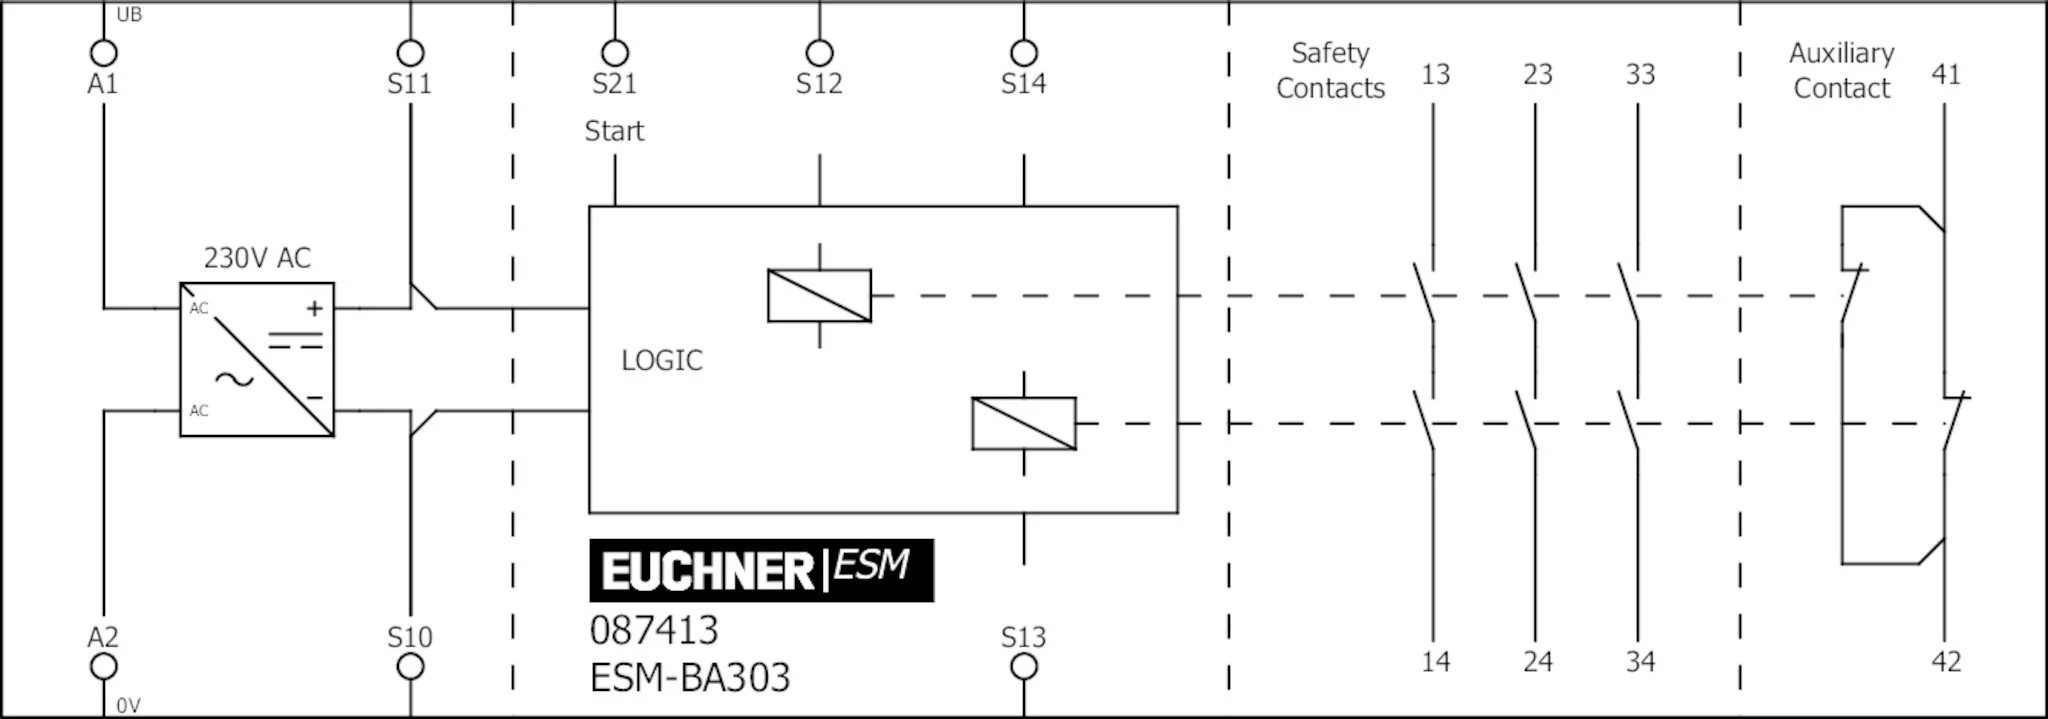 ESM-BA303 Basic device ESM-BA3.., 3 safety contacts, 1